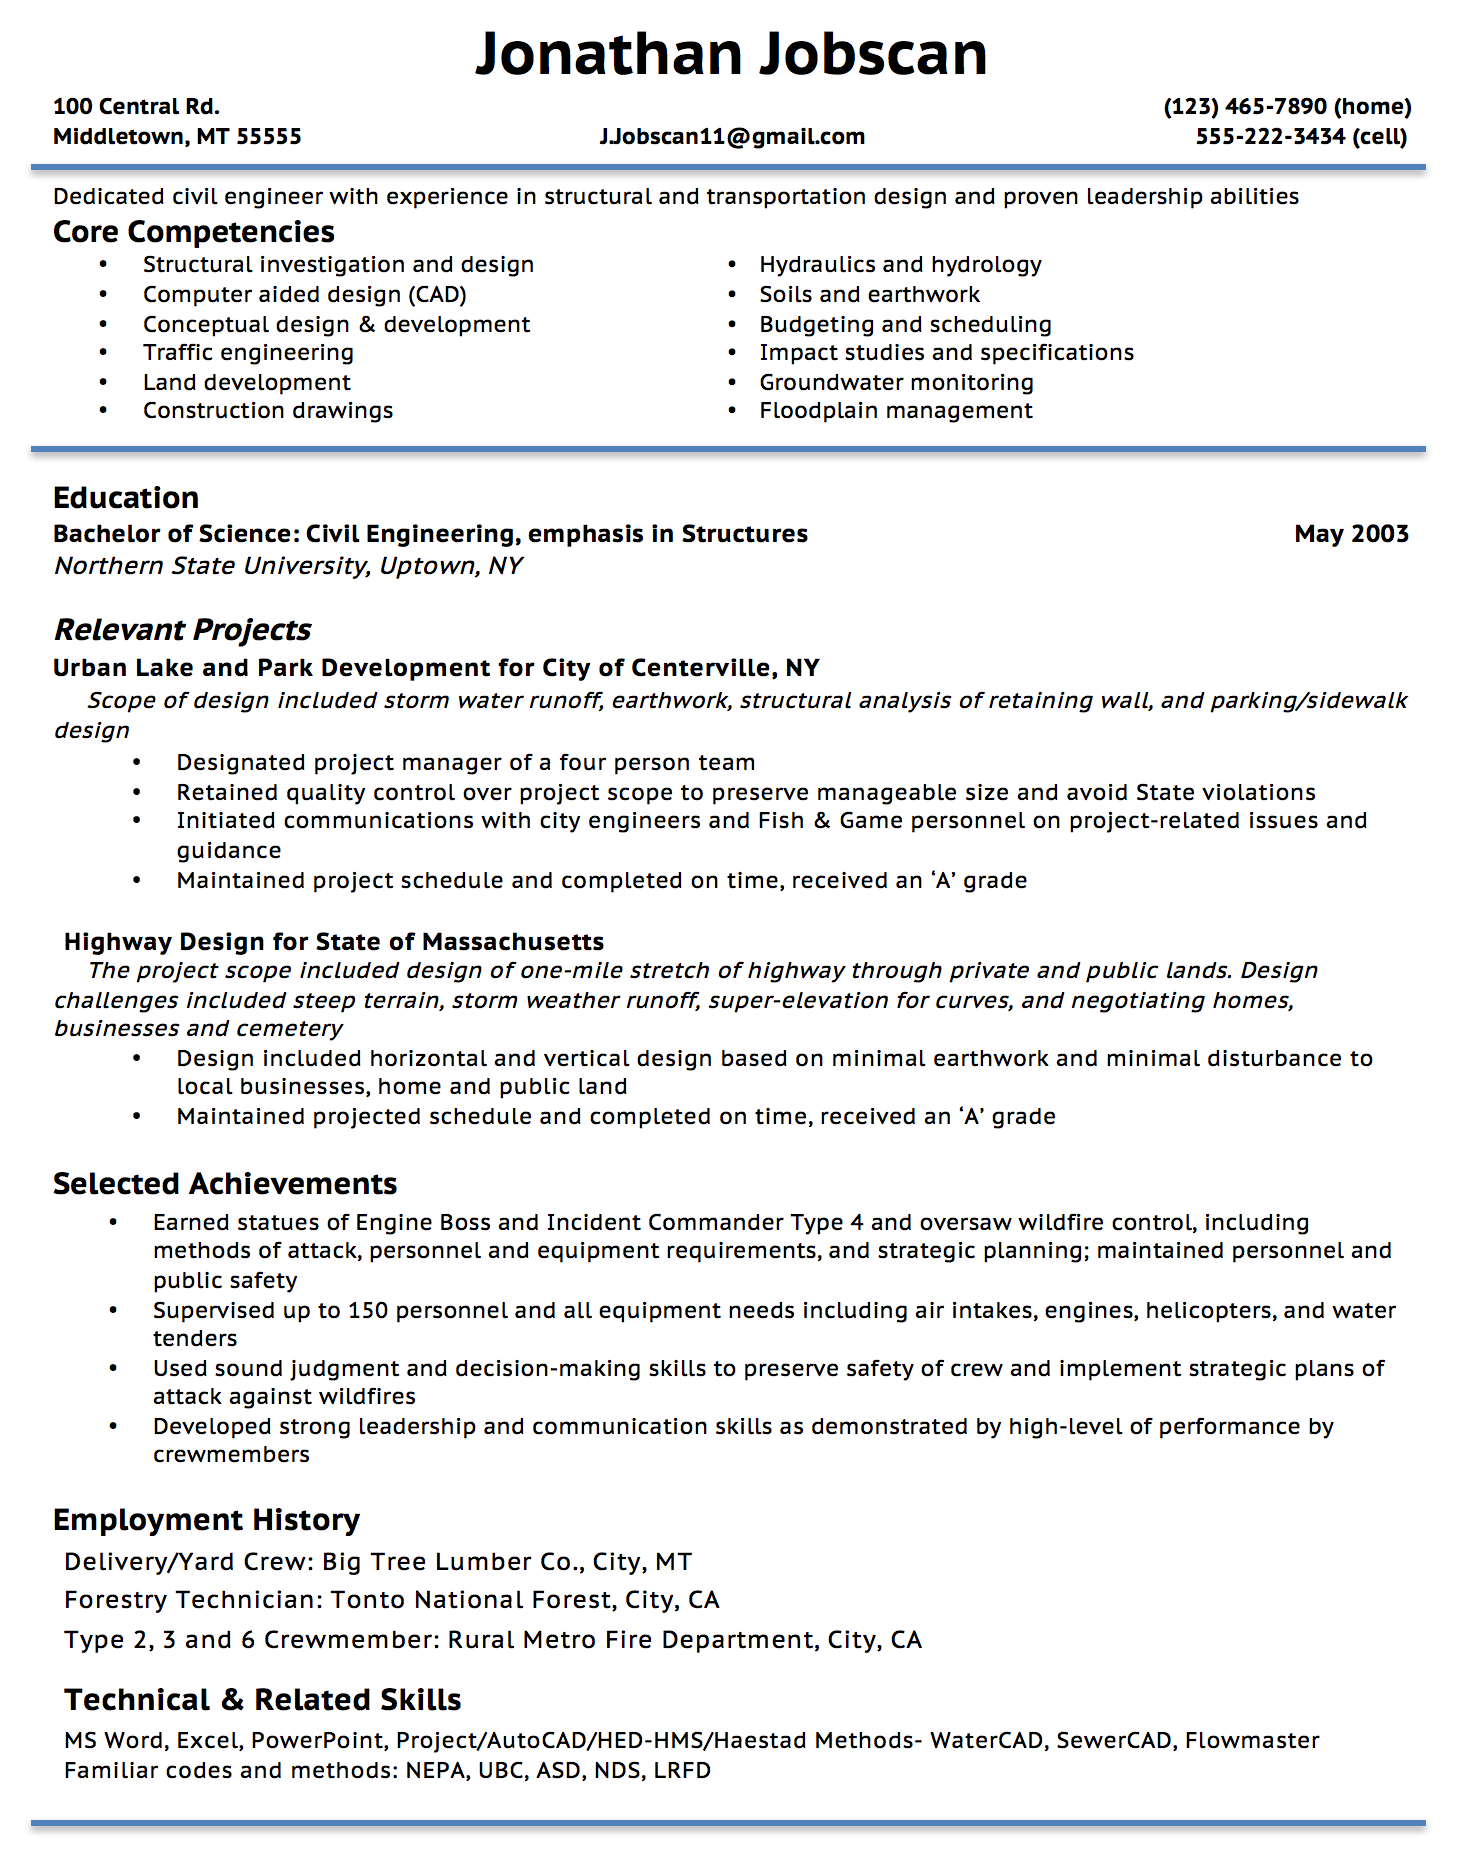 Opposenewapstandardsus  Mesmerizing Resume Writing Guide  Jobscan With Magnificent Example Of A Functional Resume Format With Appealing Resume With Salary History Also Business Analyst Resume Examples In Addition Contemporary Resume And Chronological Resume Sample As Well As Good Objective For A Resume Additionally College Resume Templates From Jobscanco With Opposenewapstandardsus  Magnificent Resume Writing Guide  Jobscan With Appealing Example Of A Functional Resume Format And Mesmerizing Resume With Salary History Also Business Analyst Resume Examples In Addition Contemporary Resume From Jobscanco